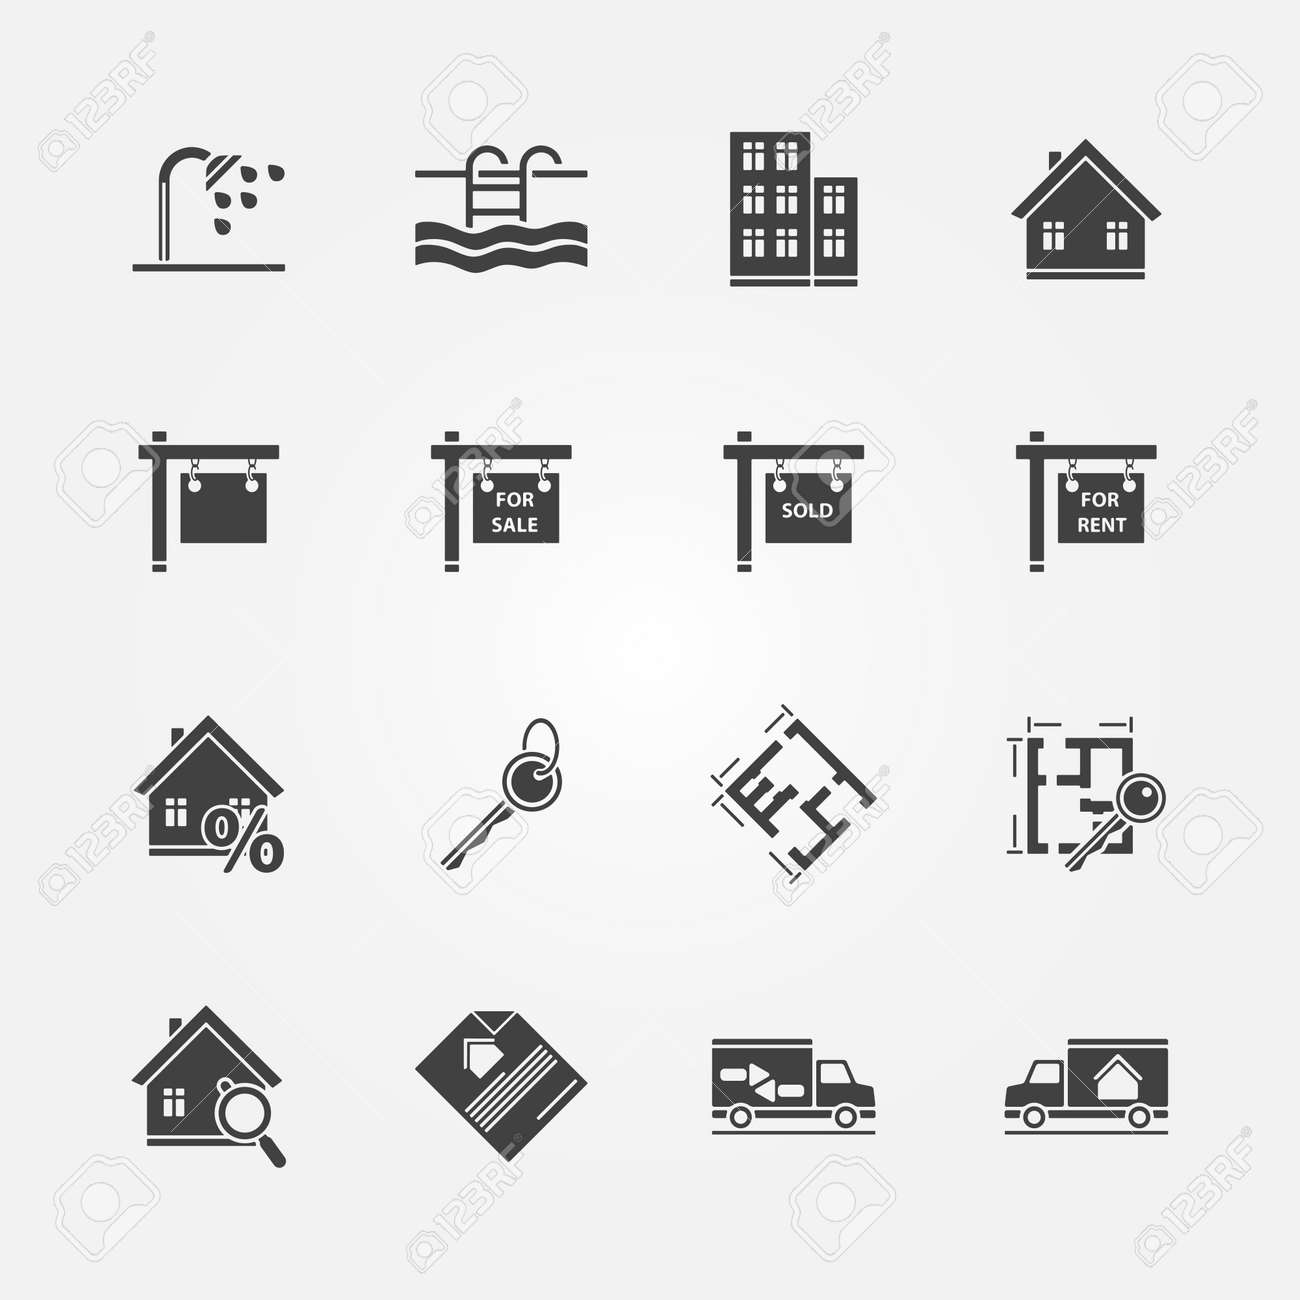 Real estate icons vector real property or realtor symbols real estate icons vector real property or realtor symbols stock vector 31430776 biocorpaavc Image collections